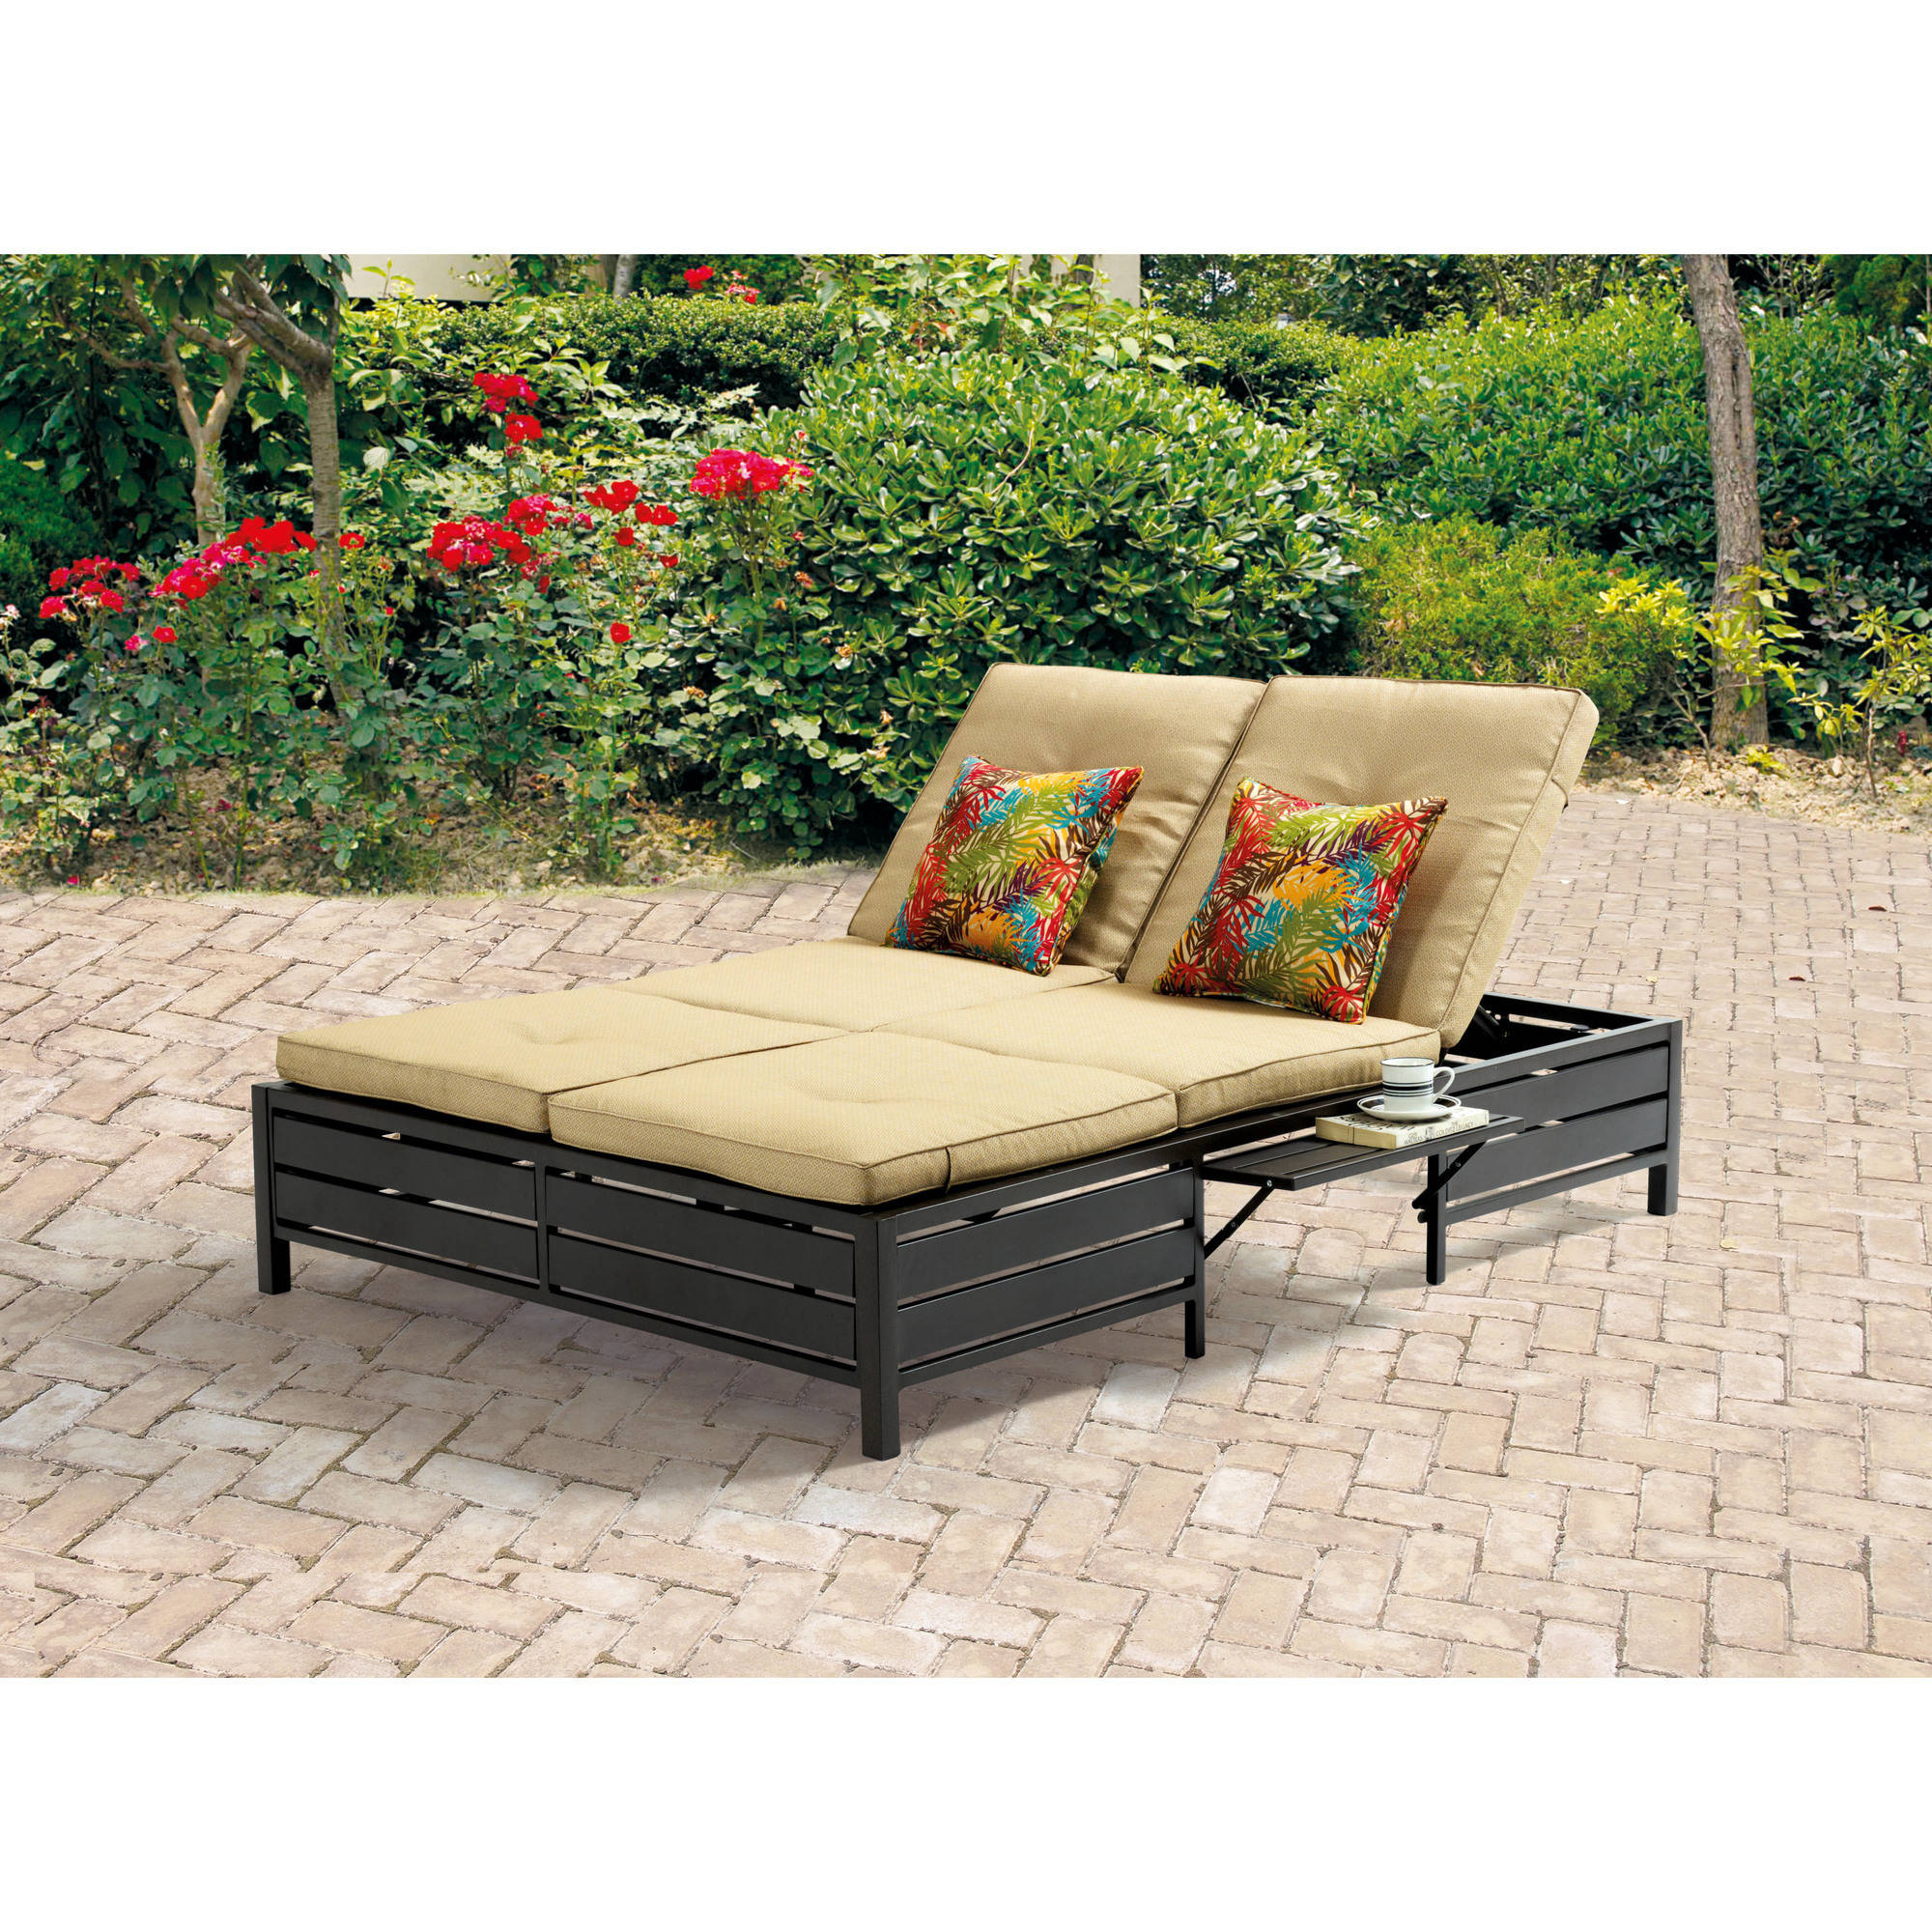 Mainstays Double Chaise Lounger, Tan, Seats 2